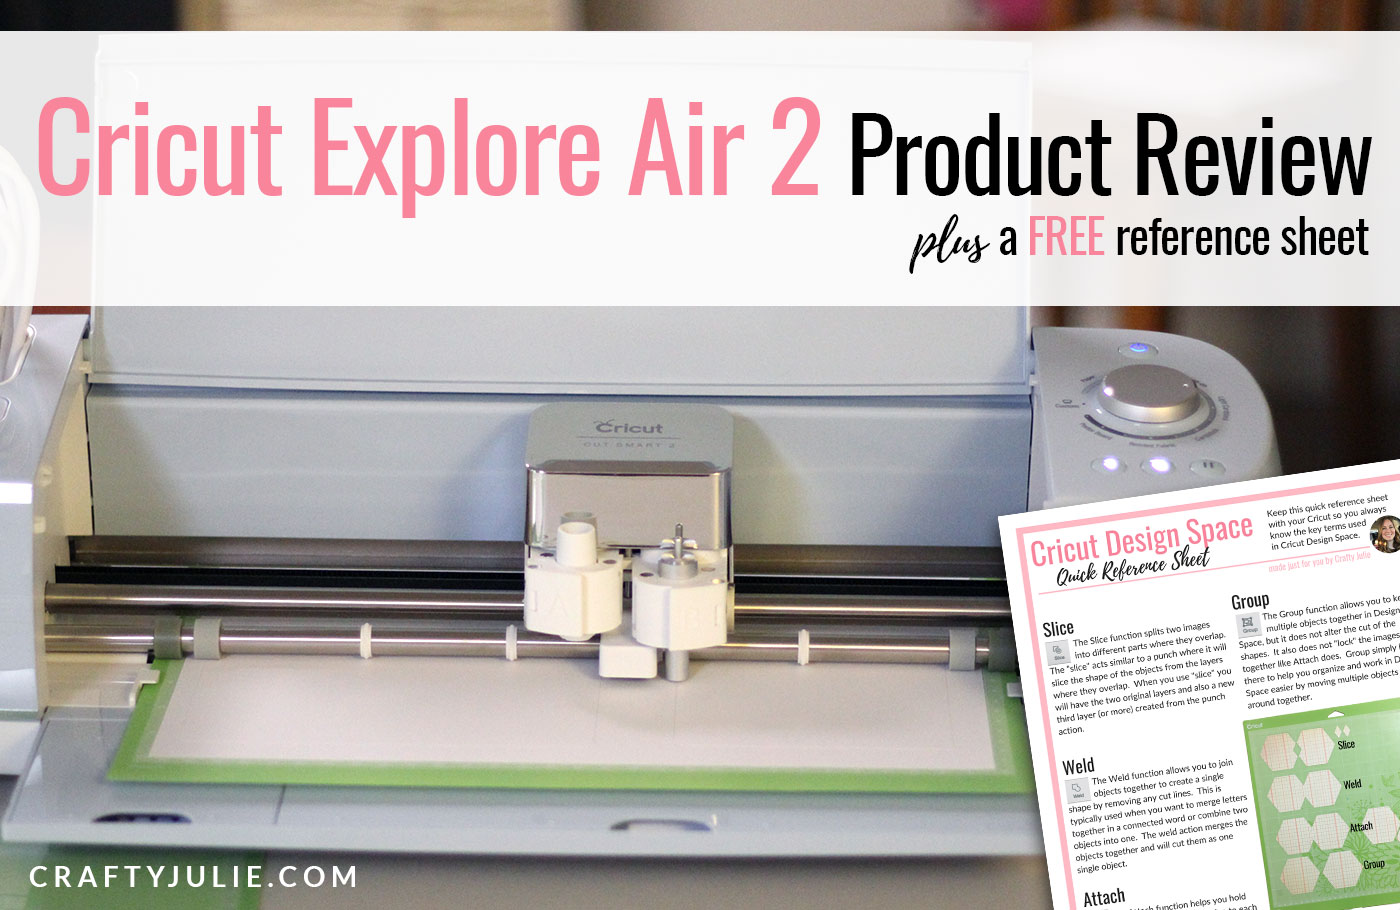 Cricut Explore Air 2 Review from a Scrapbooker · Crafty Julie